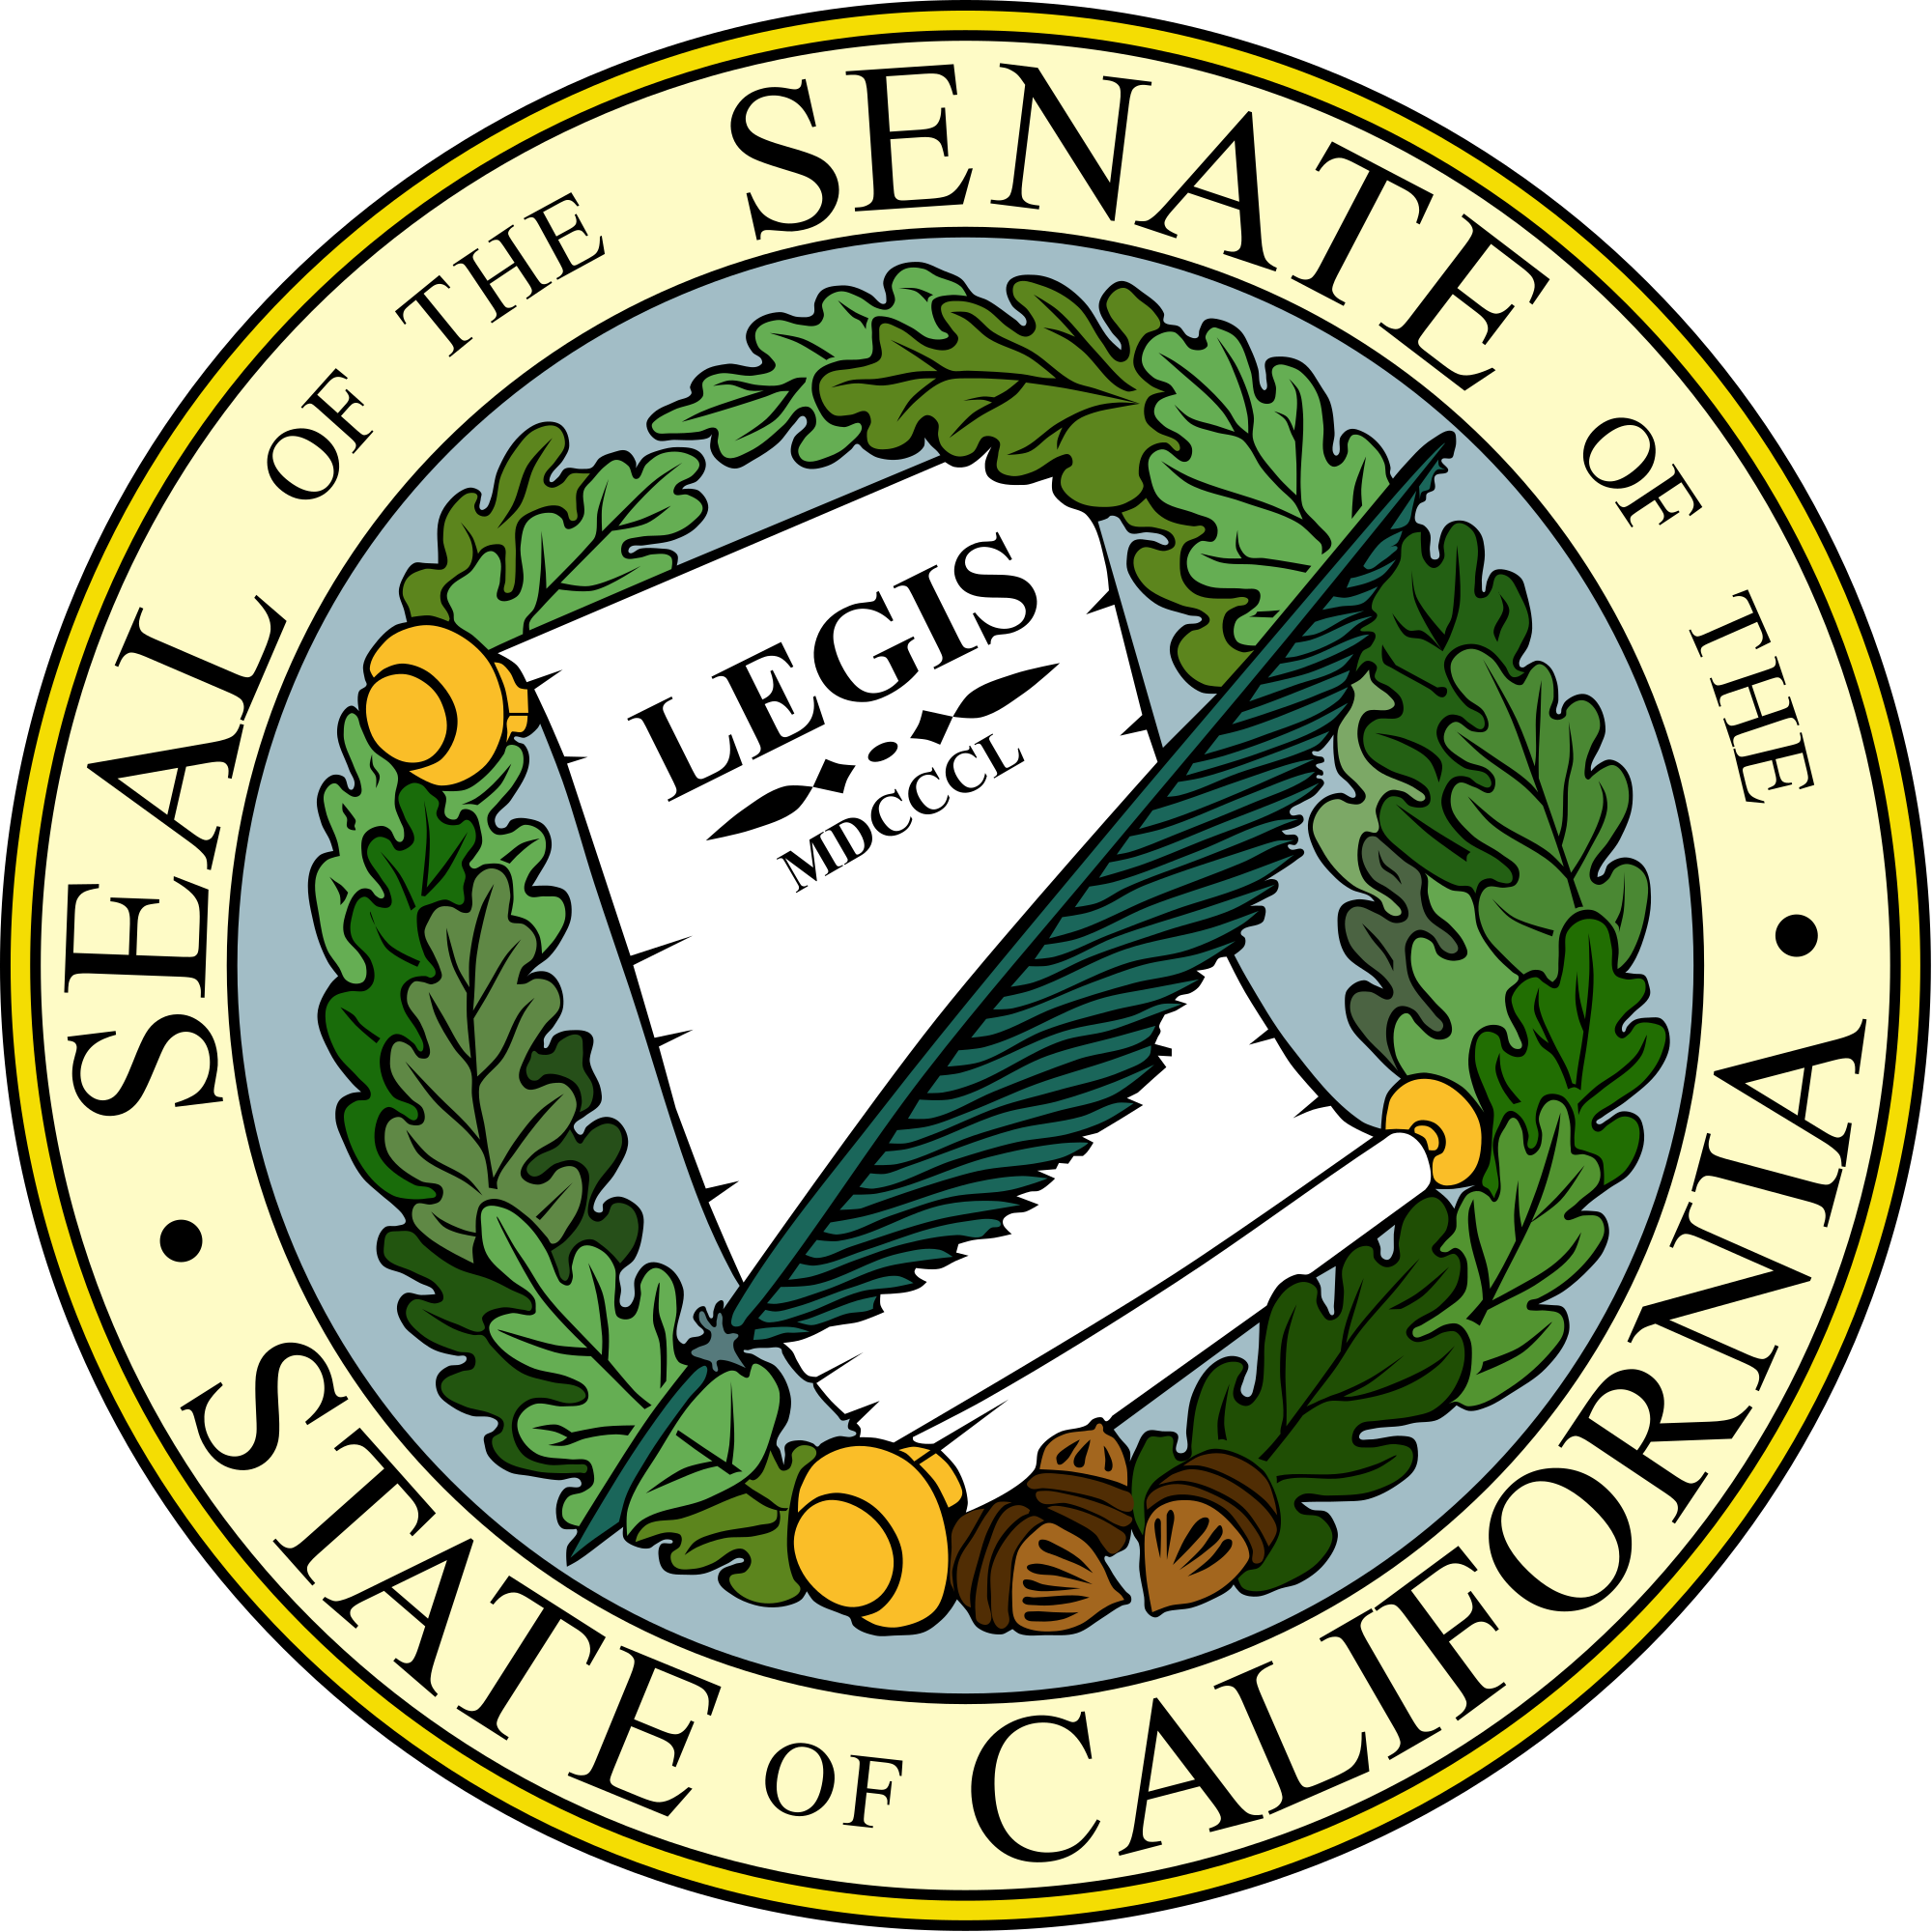 California svg state graphic. File seal of the